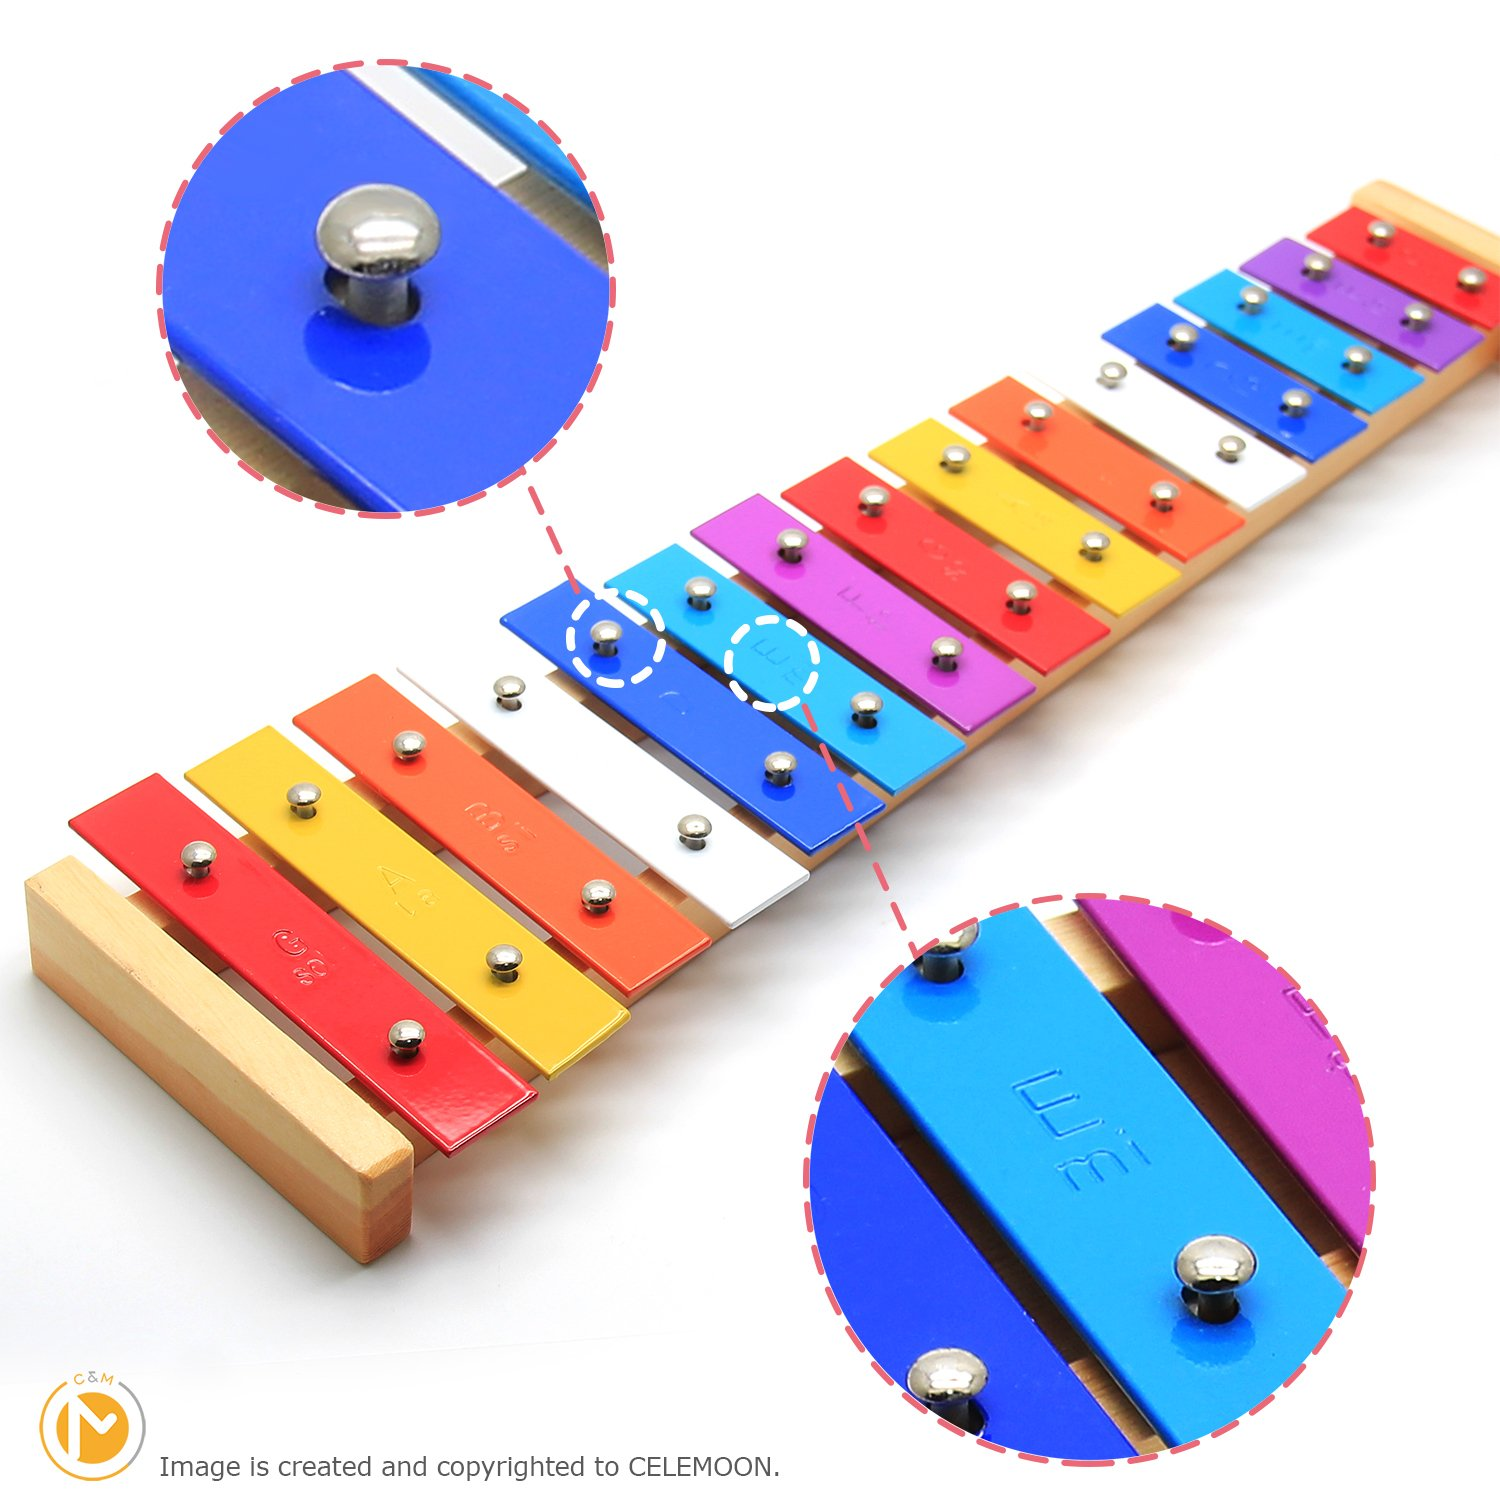 CELEMOON Natural Wooden Toddler Xylophone Glockenspiel For Kids with Multi-Colored Metal Bars Included Two Sets of Child-Safe Wooden Mallets (15-tone) by CELEMOON (Image #2)